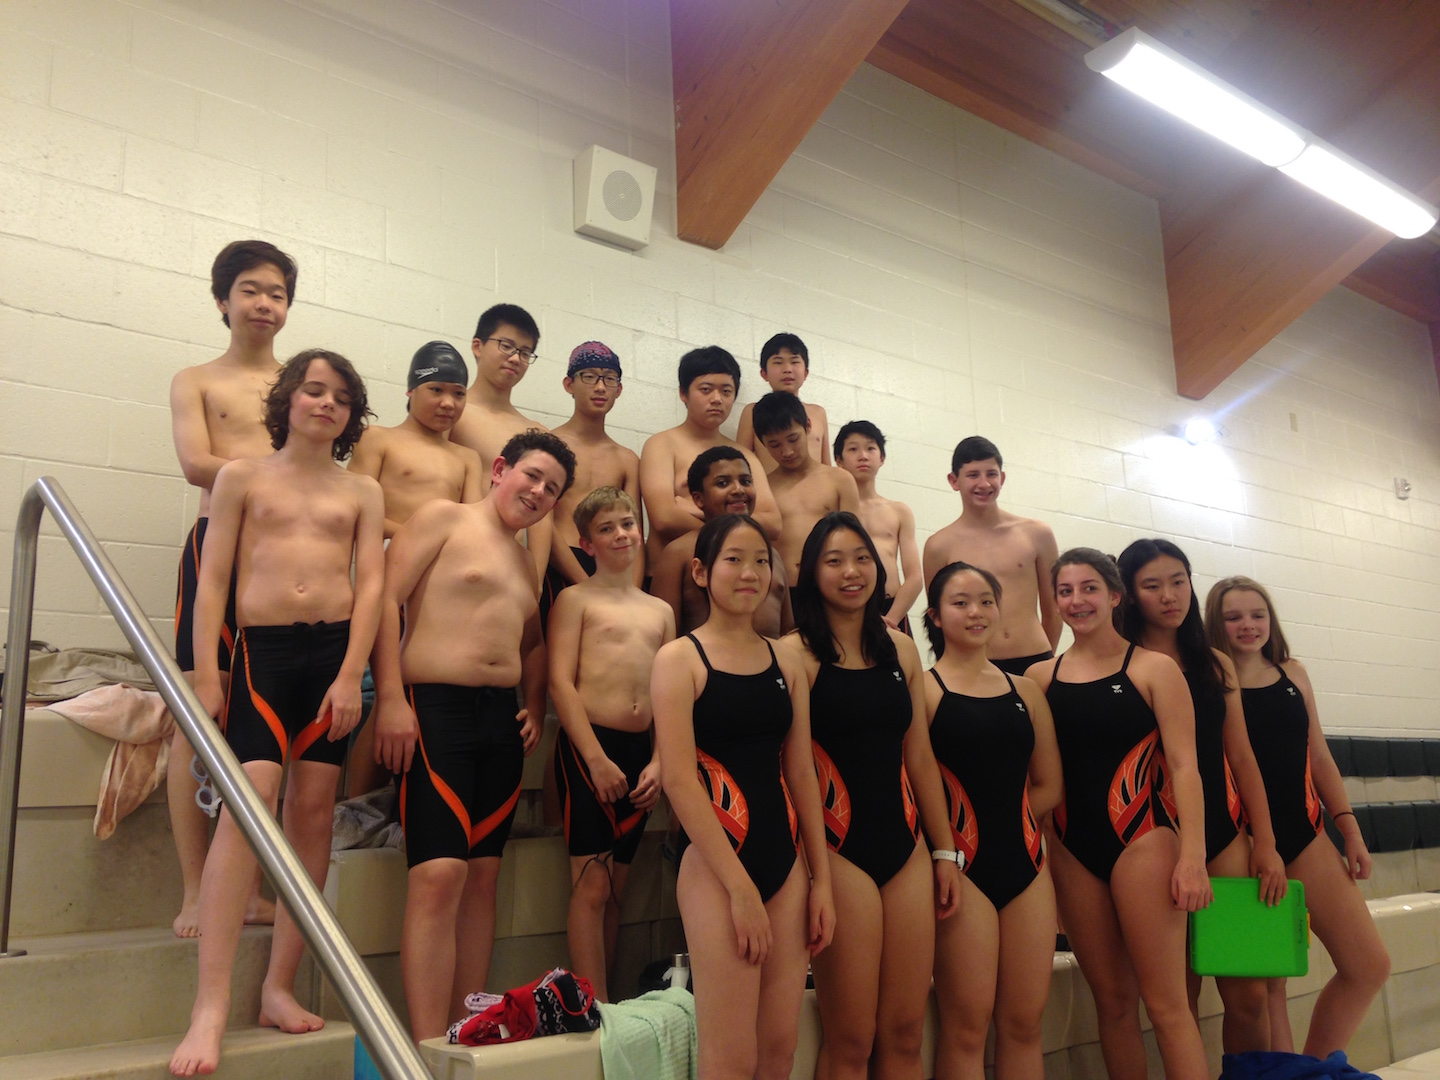 Rectory's first ever Swim Team at Eagle Hill School for their first swim meet.